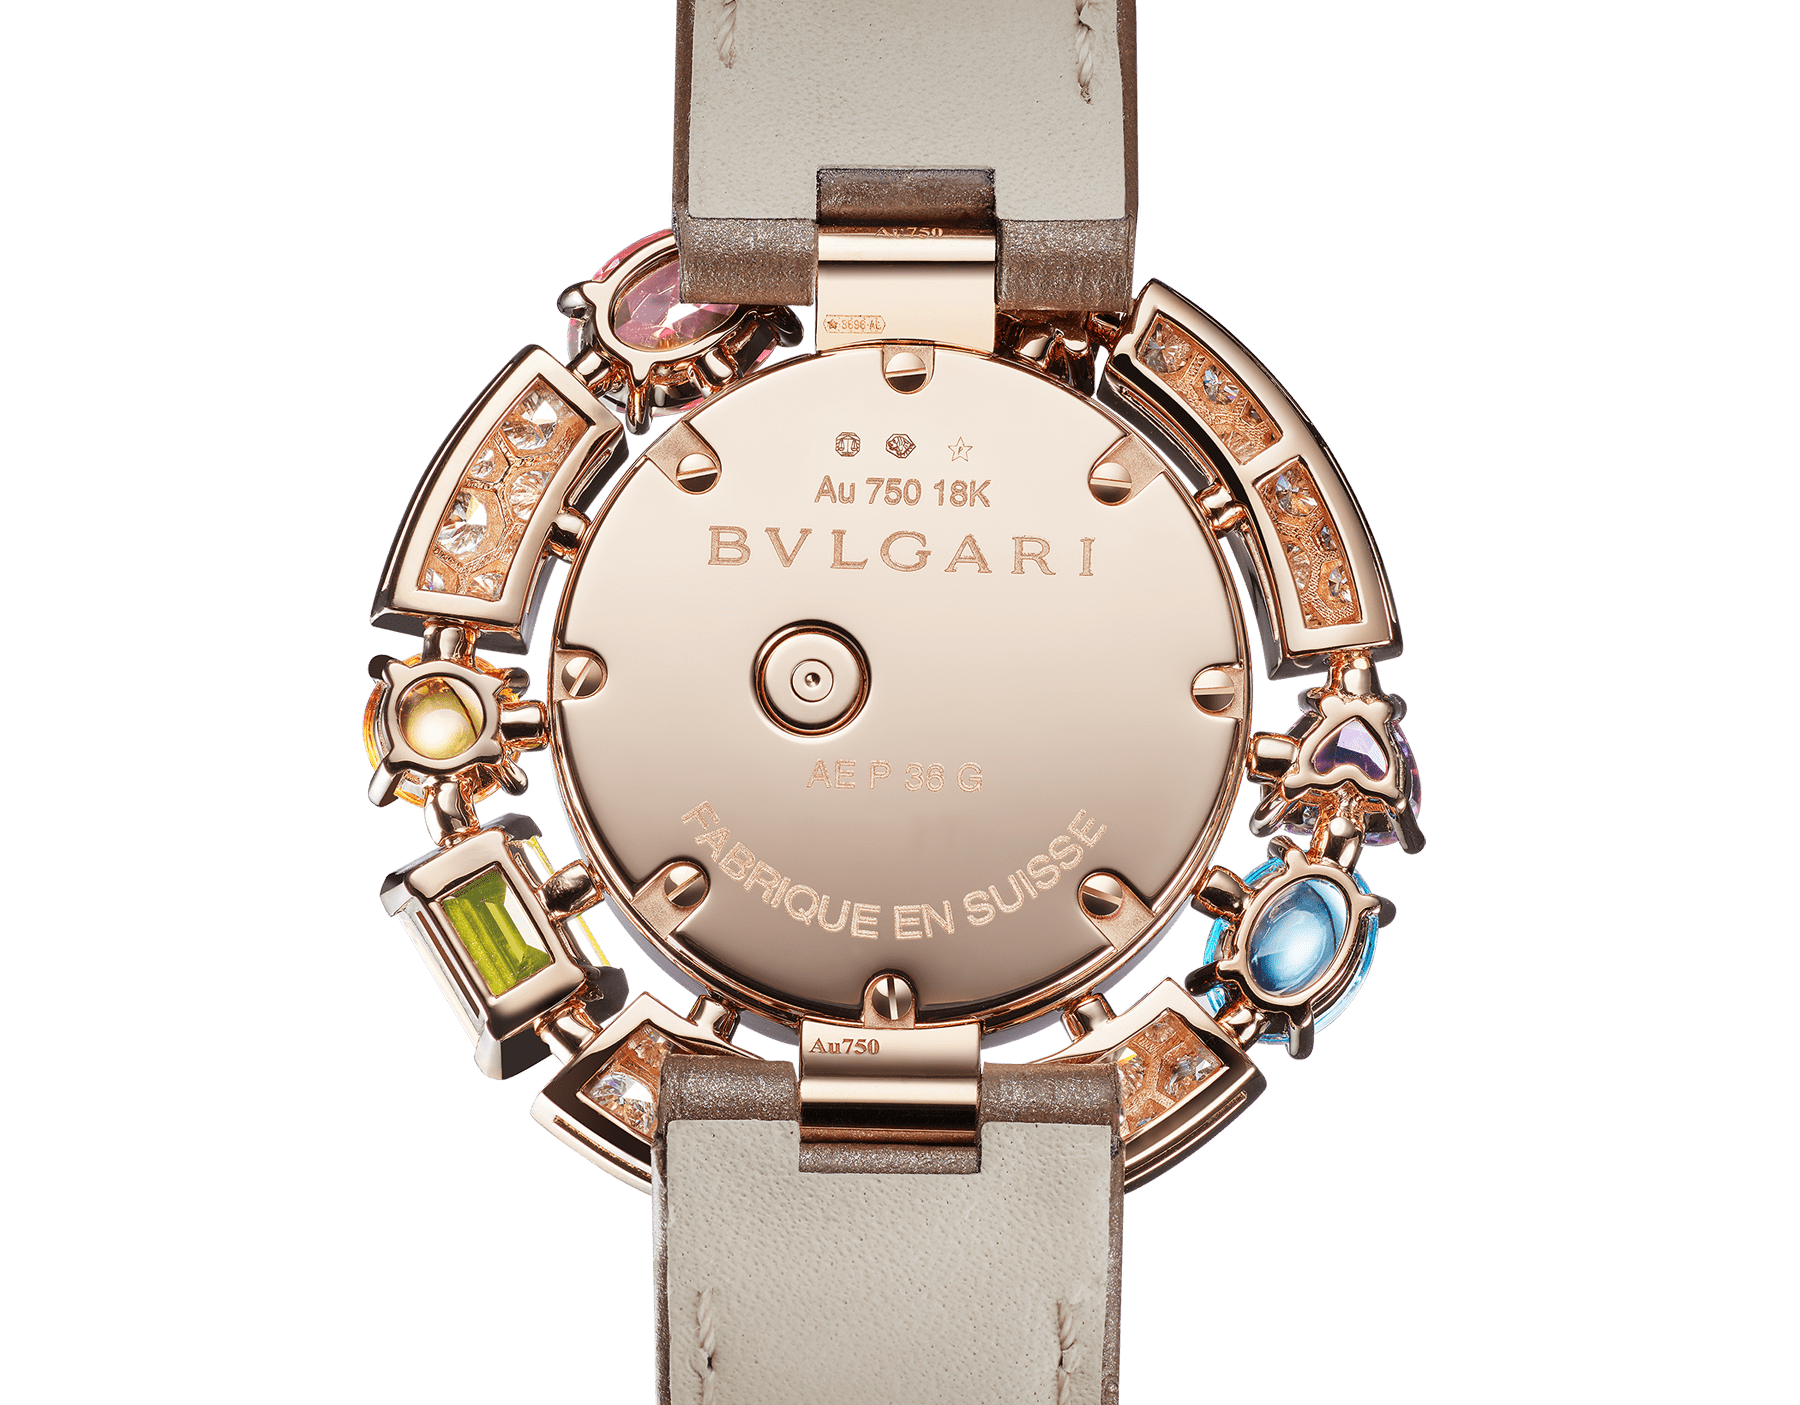 Allegra High Jewelry watch with 18 kt rose gold case set with brilliant-cut diamonds, two citrines, two amethysts, a peridot, two blue topazes and a rhodolite, mother-of-pearl dial, diamond indexes and shiny taupe alligator bracelet. Water-resistant up to 30 meters. 103493 image 4